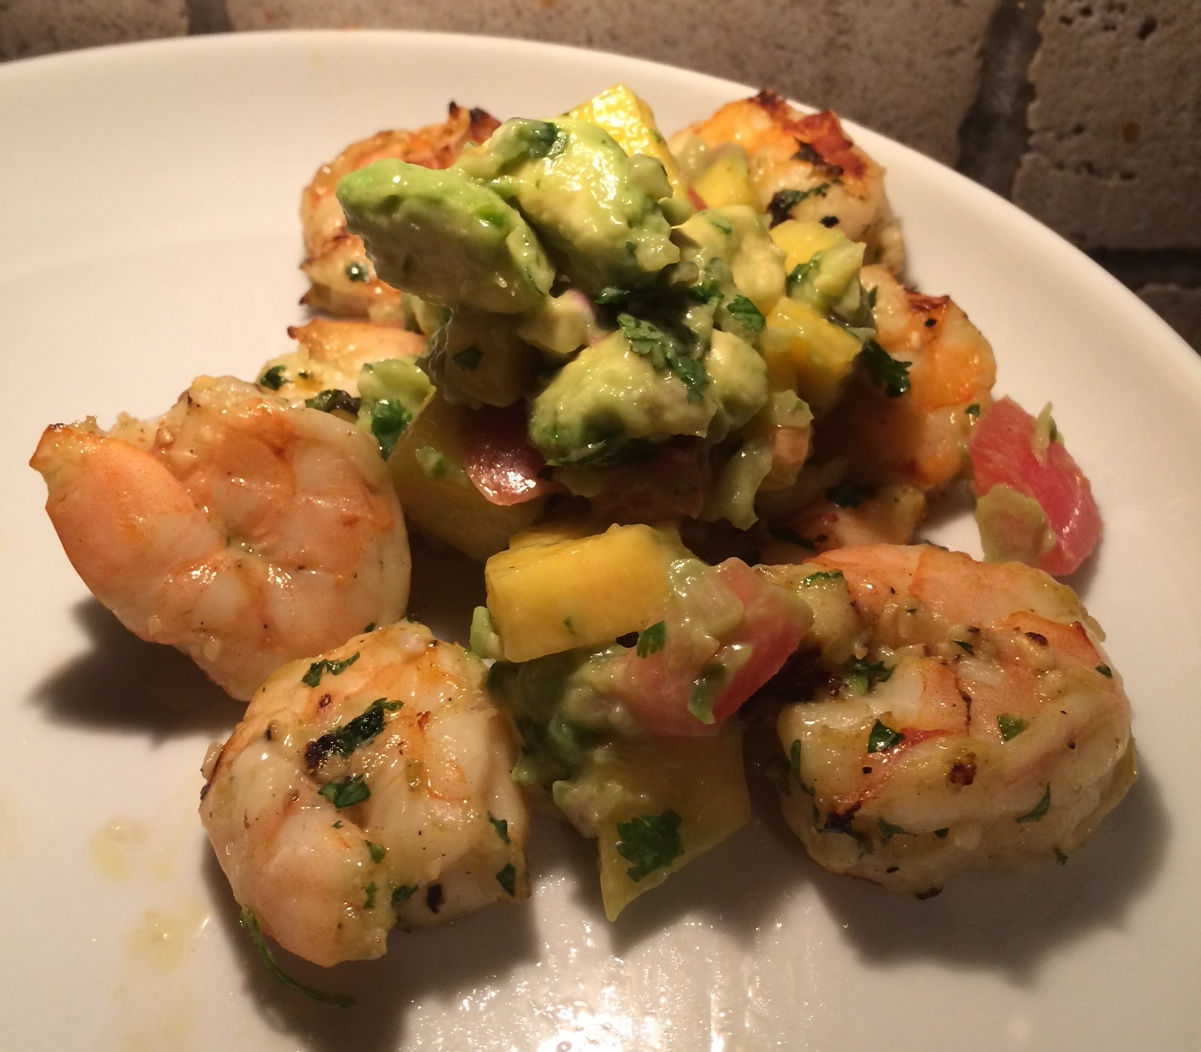 Shrimp with fresh avocado & mango salsa.